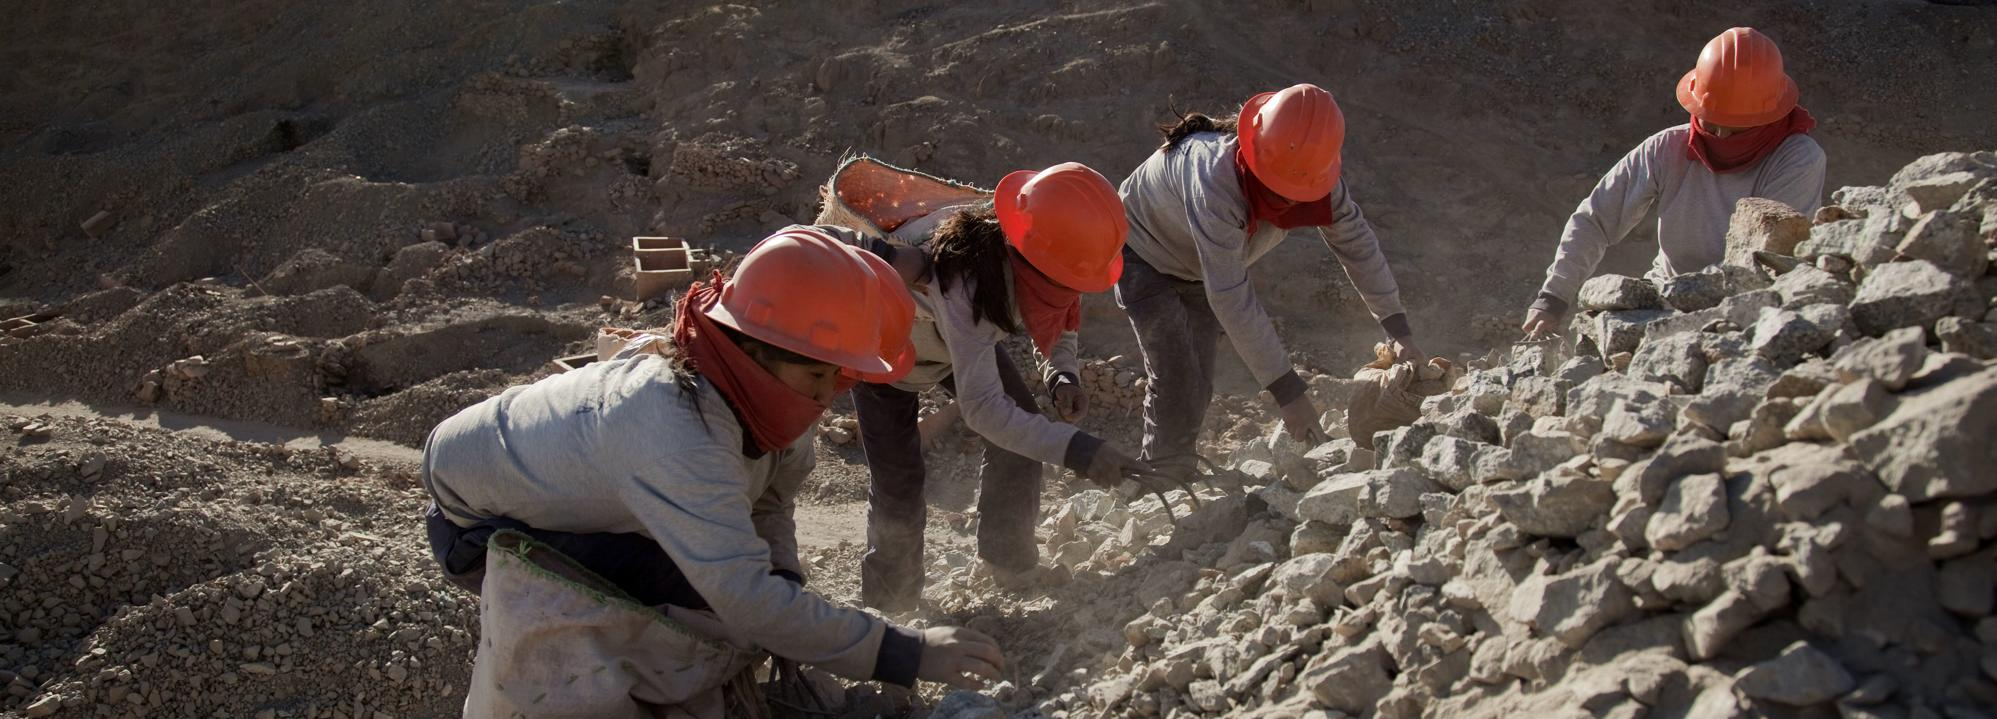 Female Peruvian gold mineral sorters © Eduardo Martino, Fairtrade